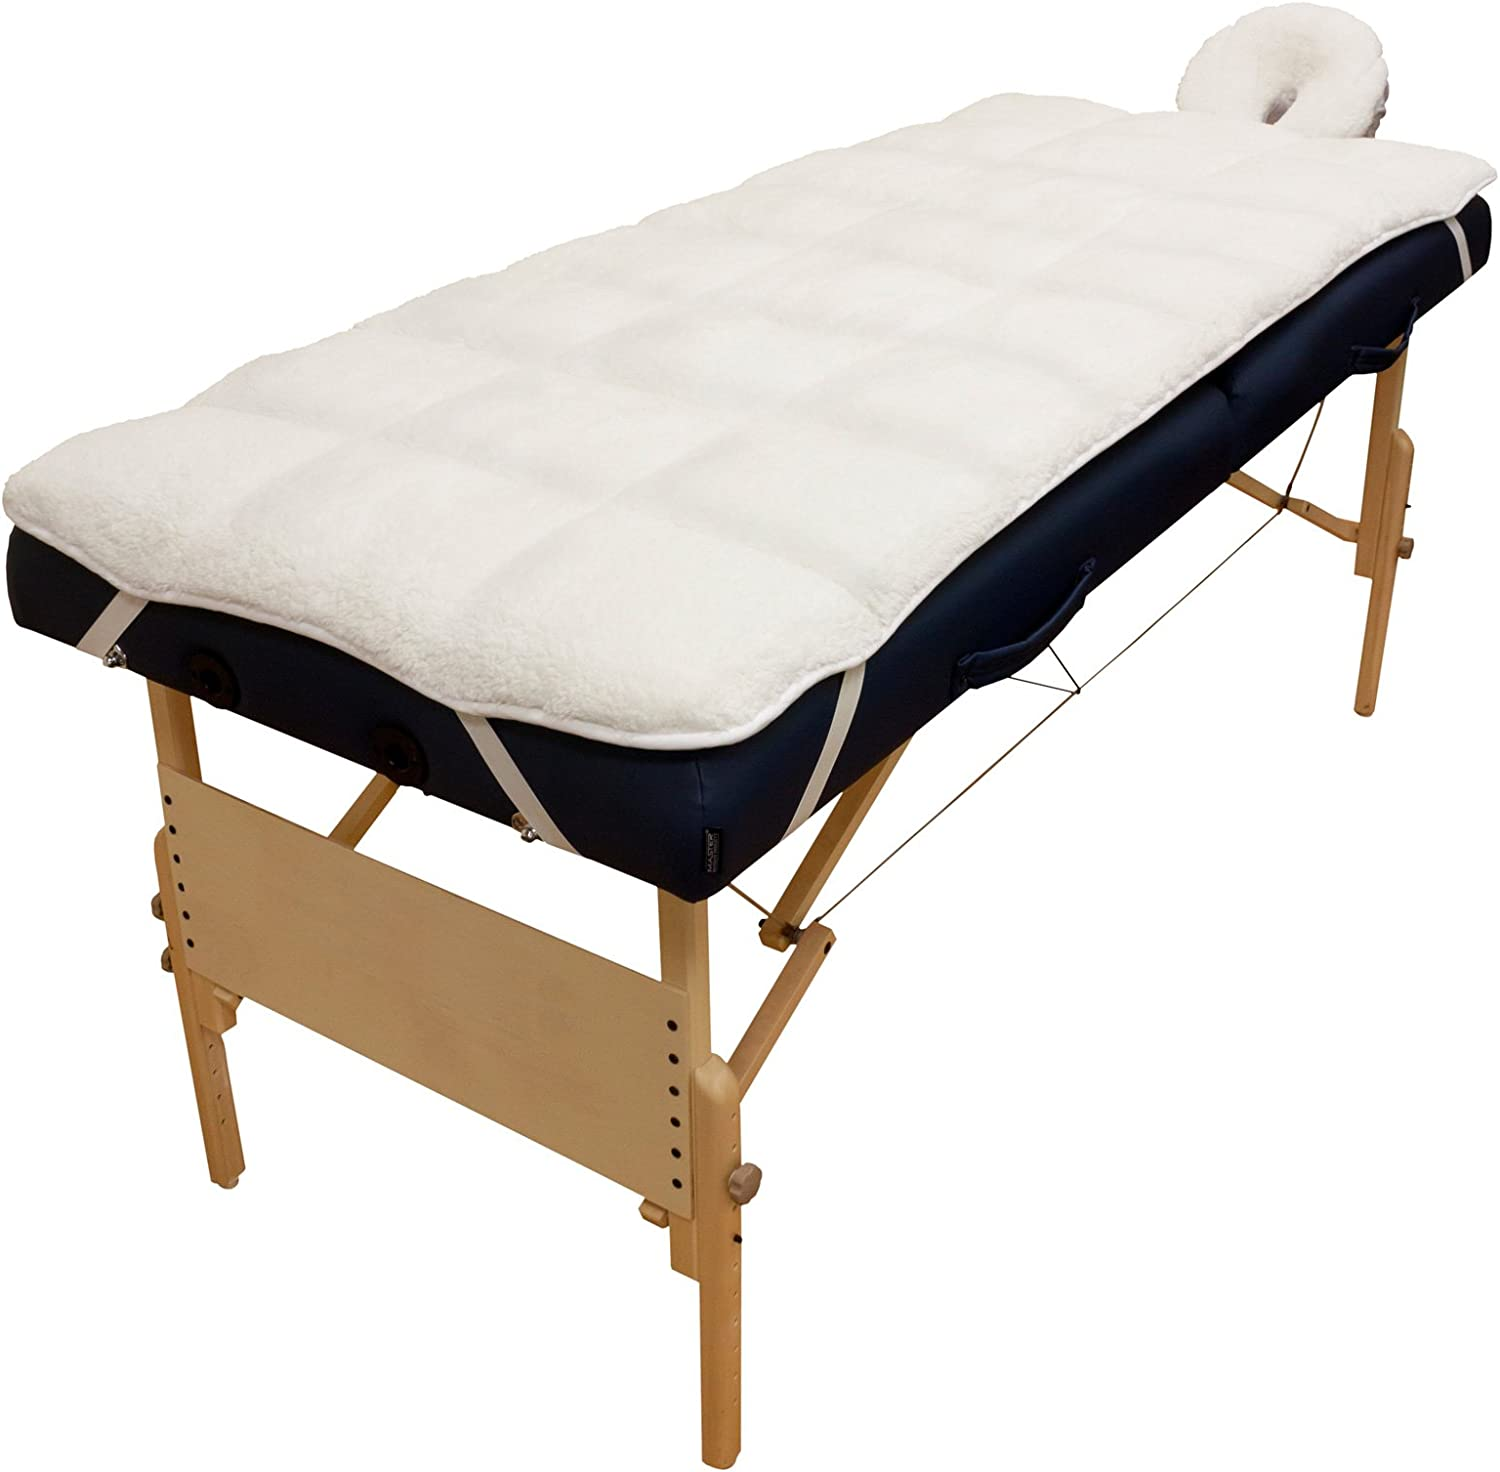 Body Linen Abundance Deluxe Quilted Fleece Massage Table Pad Set, 3.2 Pound